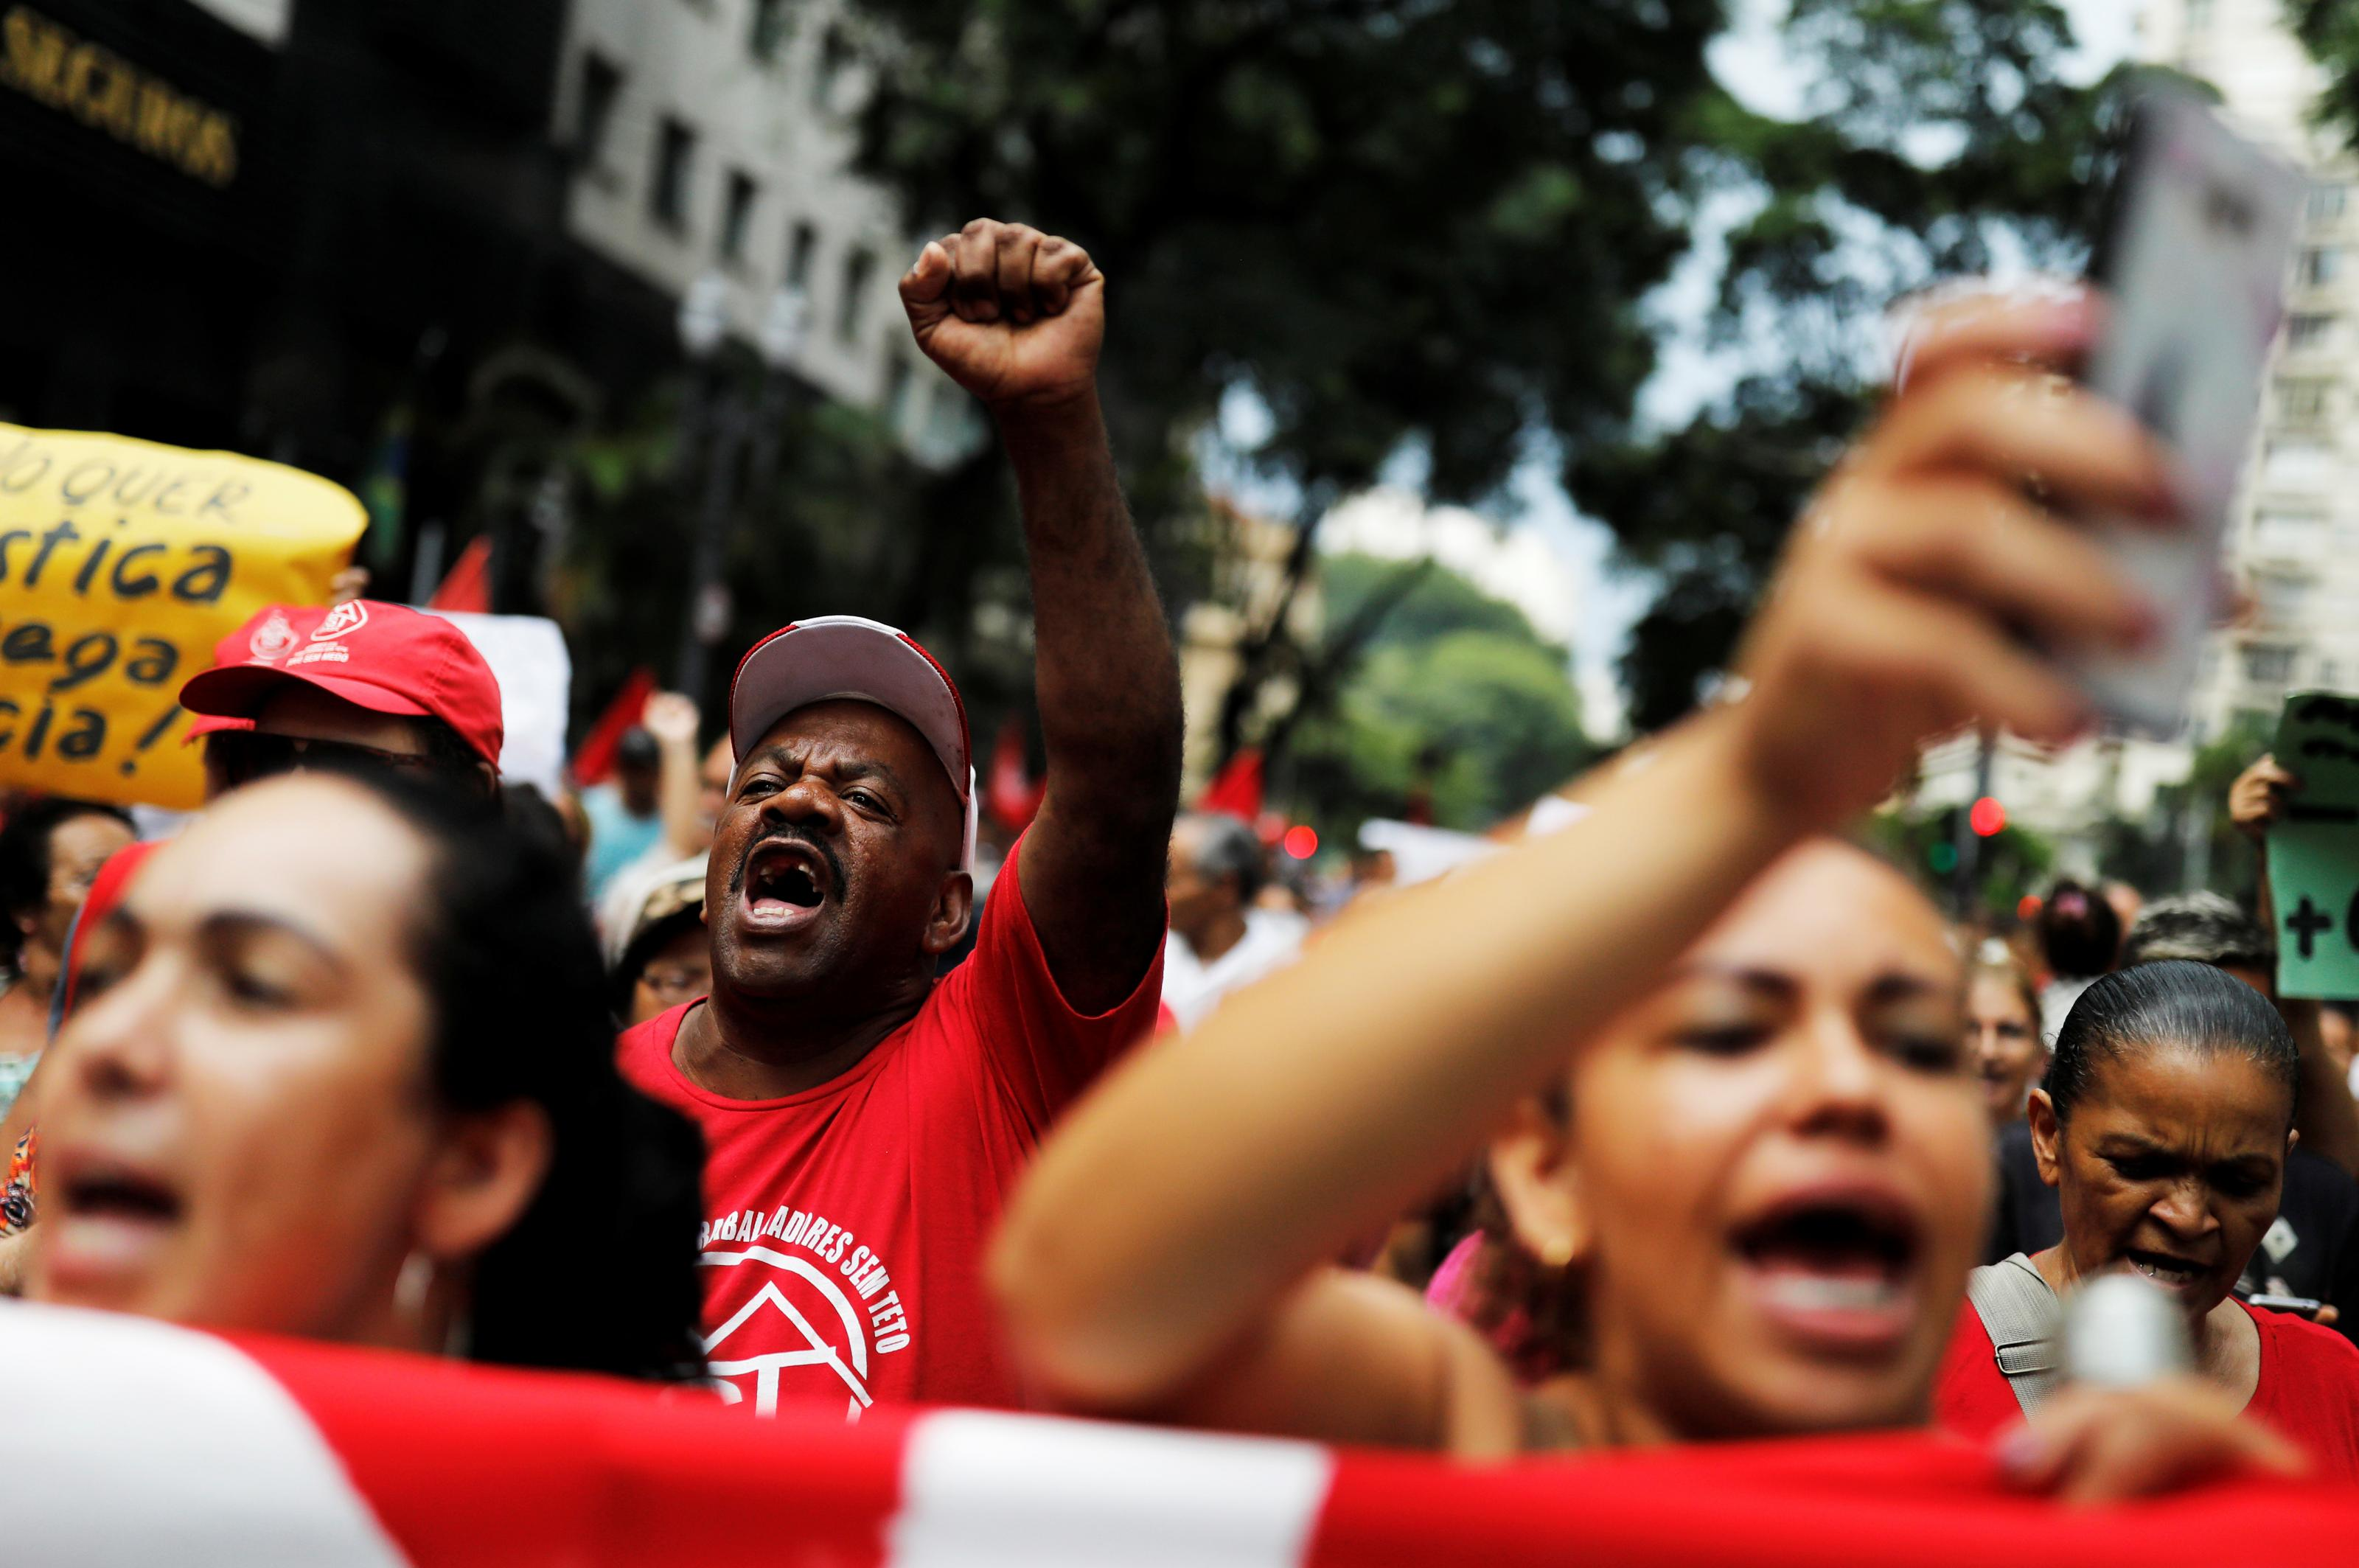 2019-01-29T211529Z_764103972_RC1EE31705B0_RTRMADP_3_BRAZIL-PROTESTS.JPG